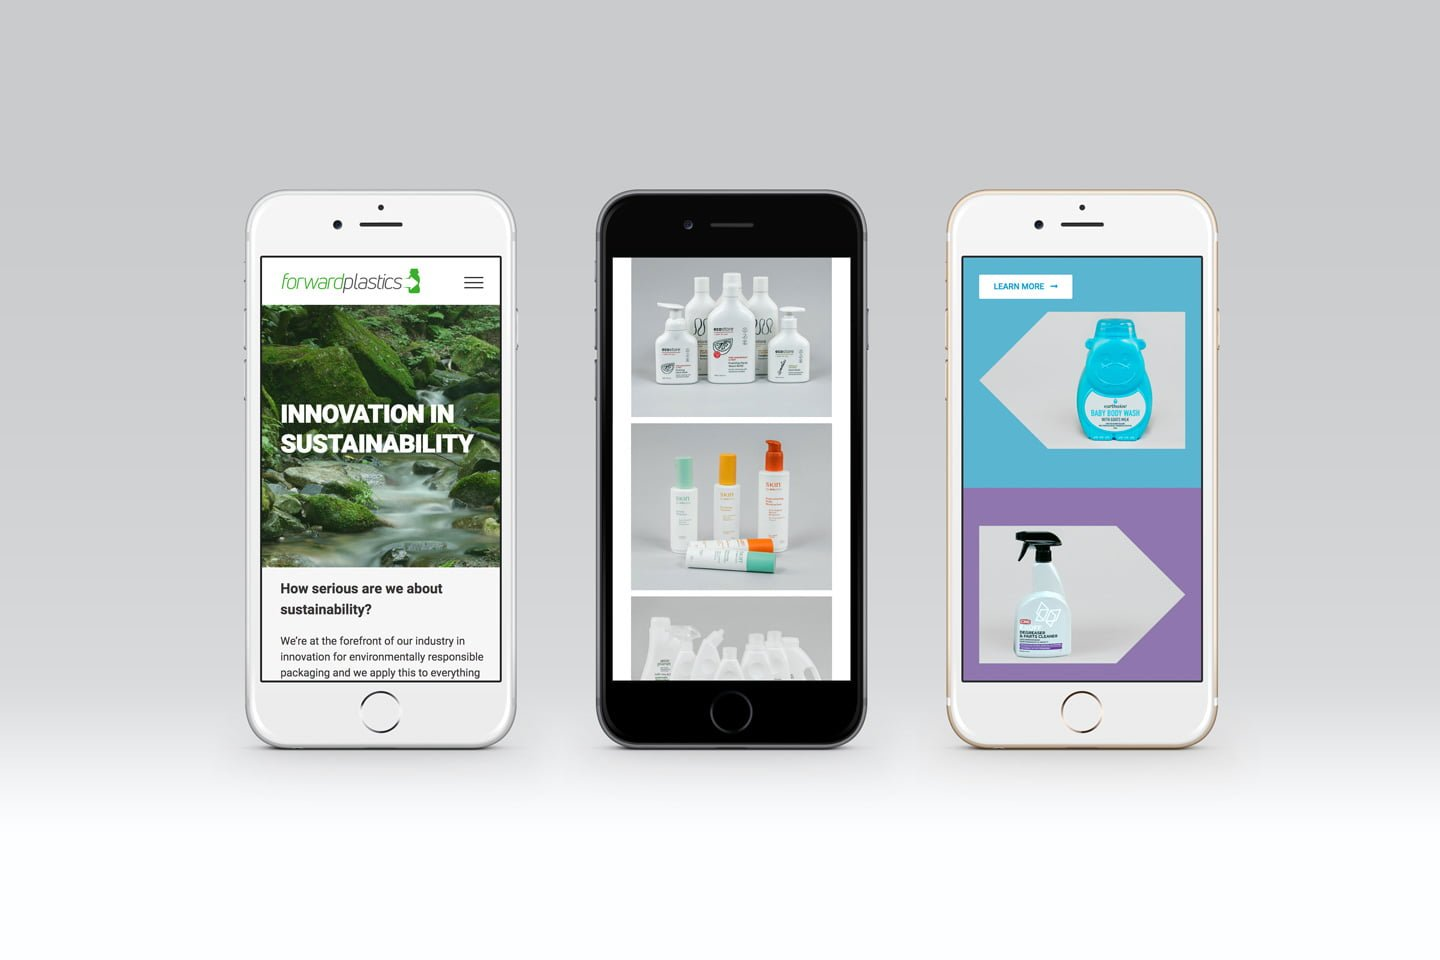 Creative mobile friendly web design for Forward Plastics